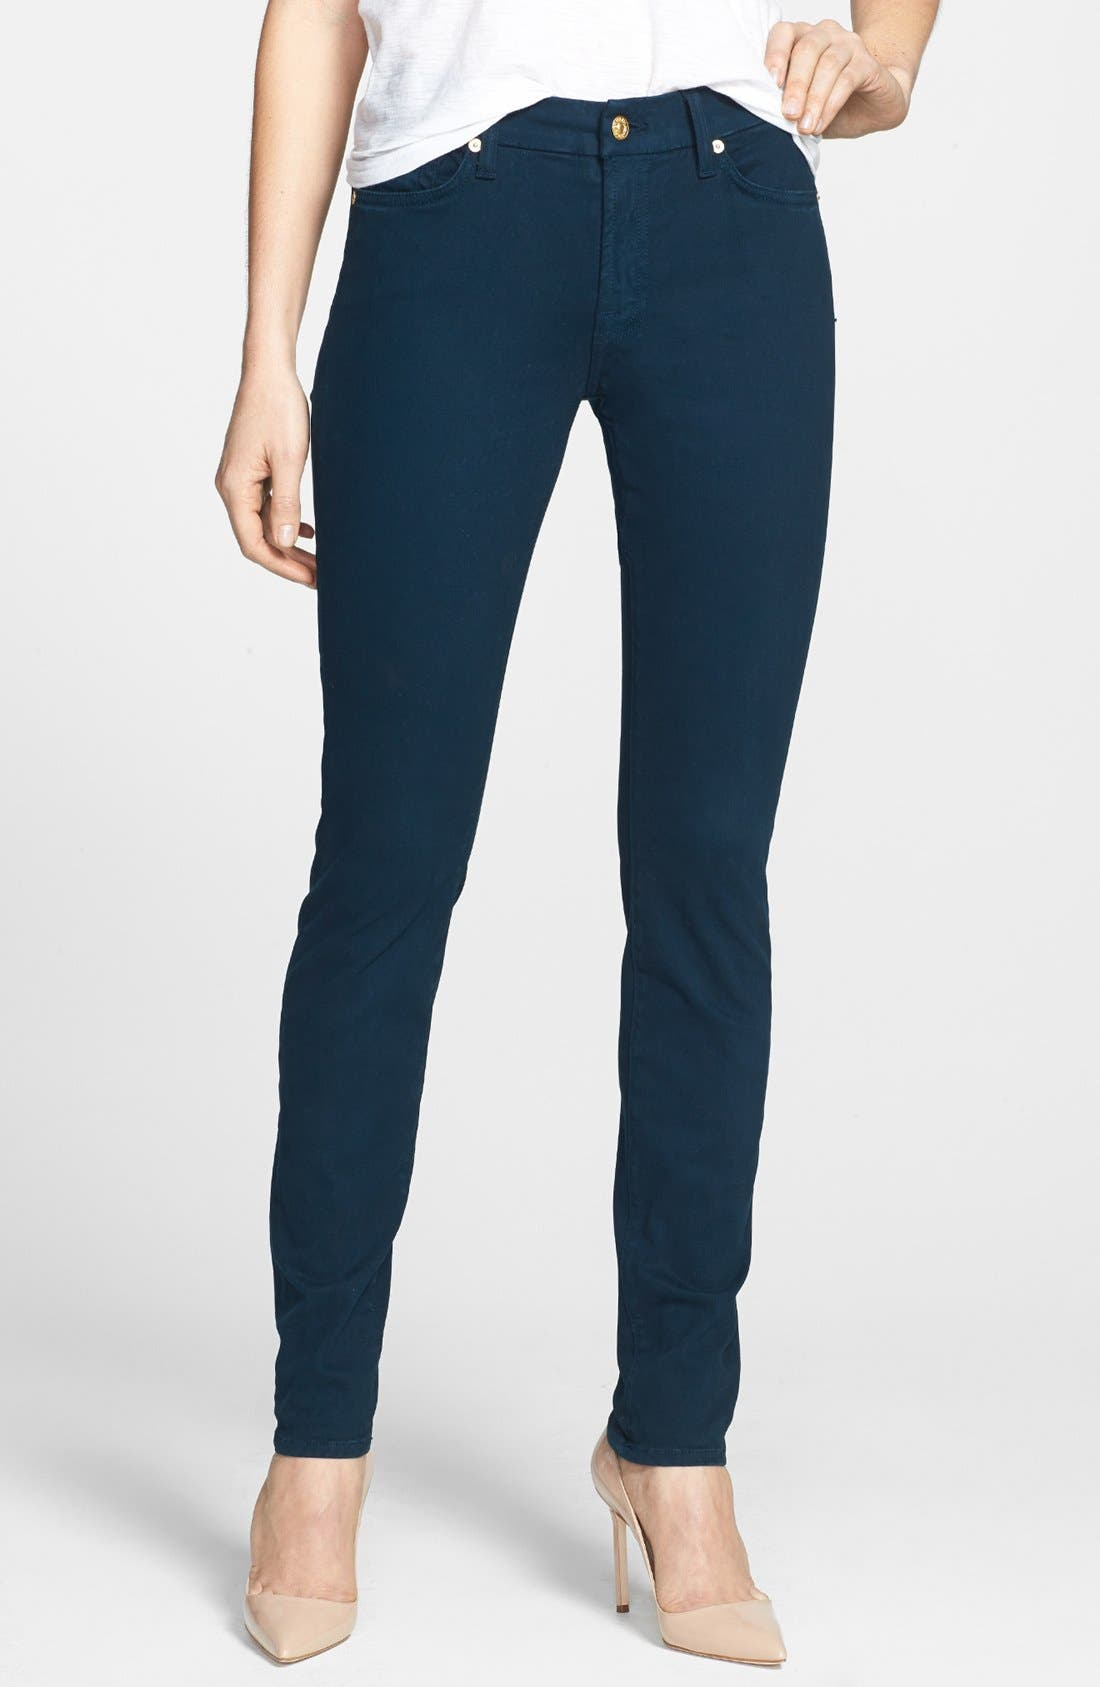 Alternate Image 1 Selected - 7 For All Mankind® Sateen Skinny Jeans (Dark Capri)